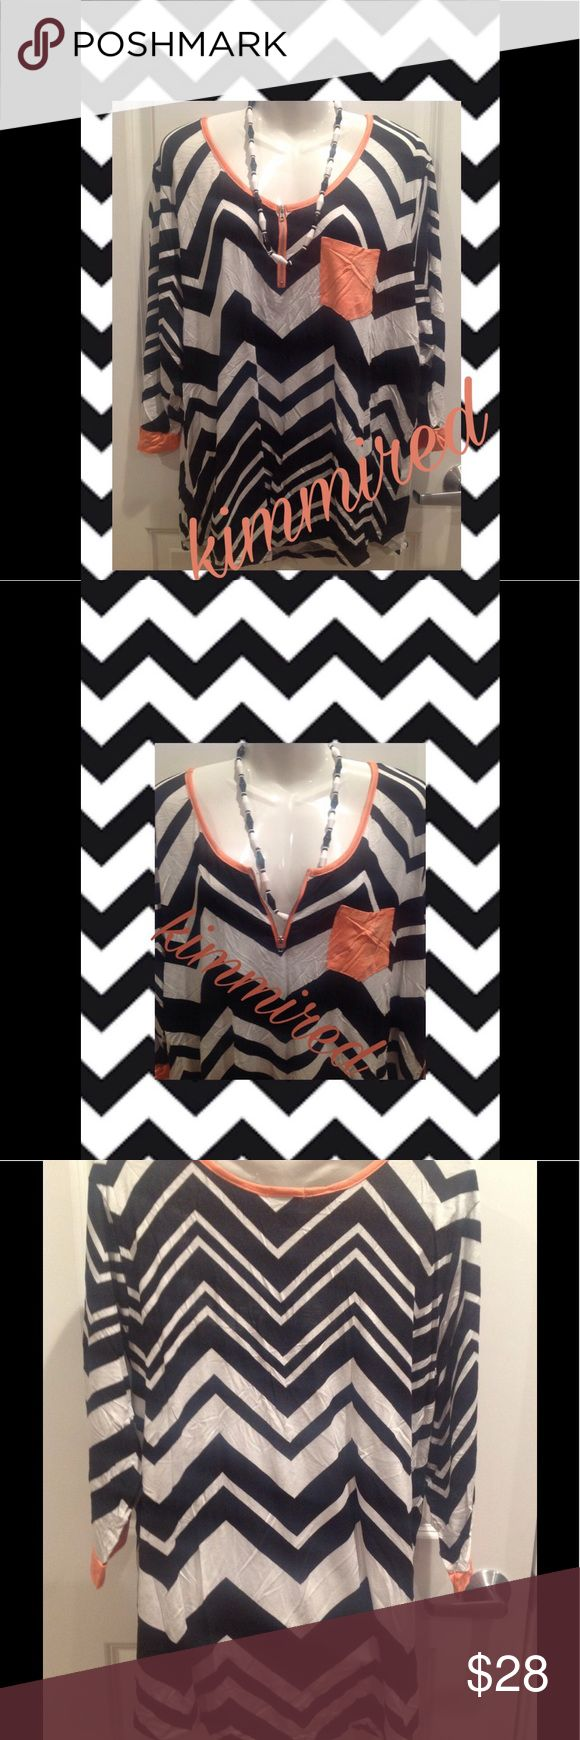 🆕 Black/White/Coral Chevron Shirt/Top ~ 3X ~ NWT PLEASE PAY ATTENTION TO MY OFFER CHART BEFORE MAKING AN OFFER‼️ Submitting a low offer is NOT NEGOTIATING‼️ If I'm lowballed, I'm blocking. I've very nice clothes & I put a lot of time on my listings. Please be respectful & remember Posh takes an additional 20%! * rant over*  🆕 Black/White/Coral Chevron Shirt/Top ~ 3X ~ NWT chevron 🍑 coral trim 🍑 functional zipper on neckline 🍑 new with tags 🍑 pocket on chest Necklace❌NOT❌ included‼️…